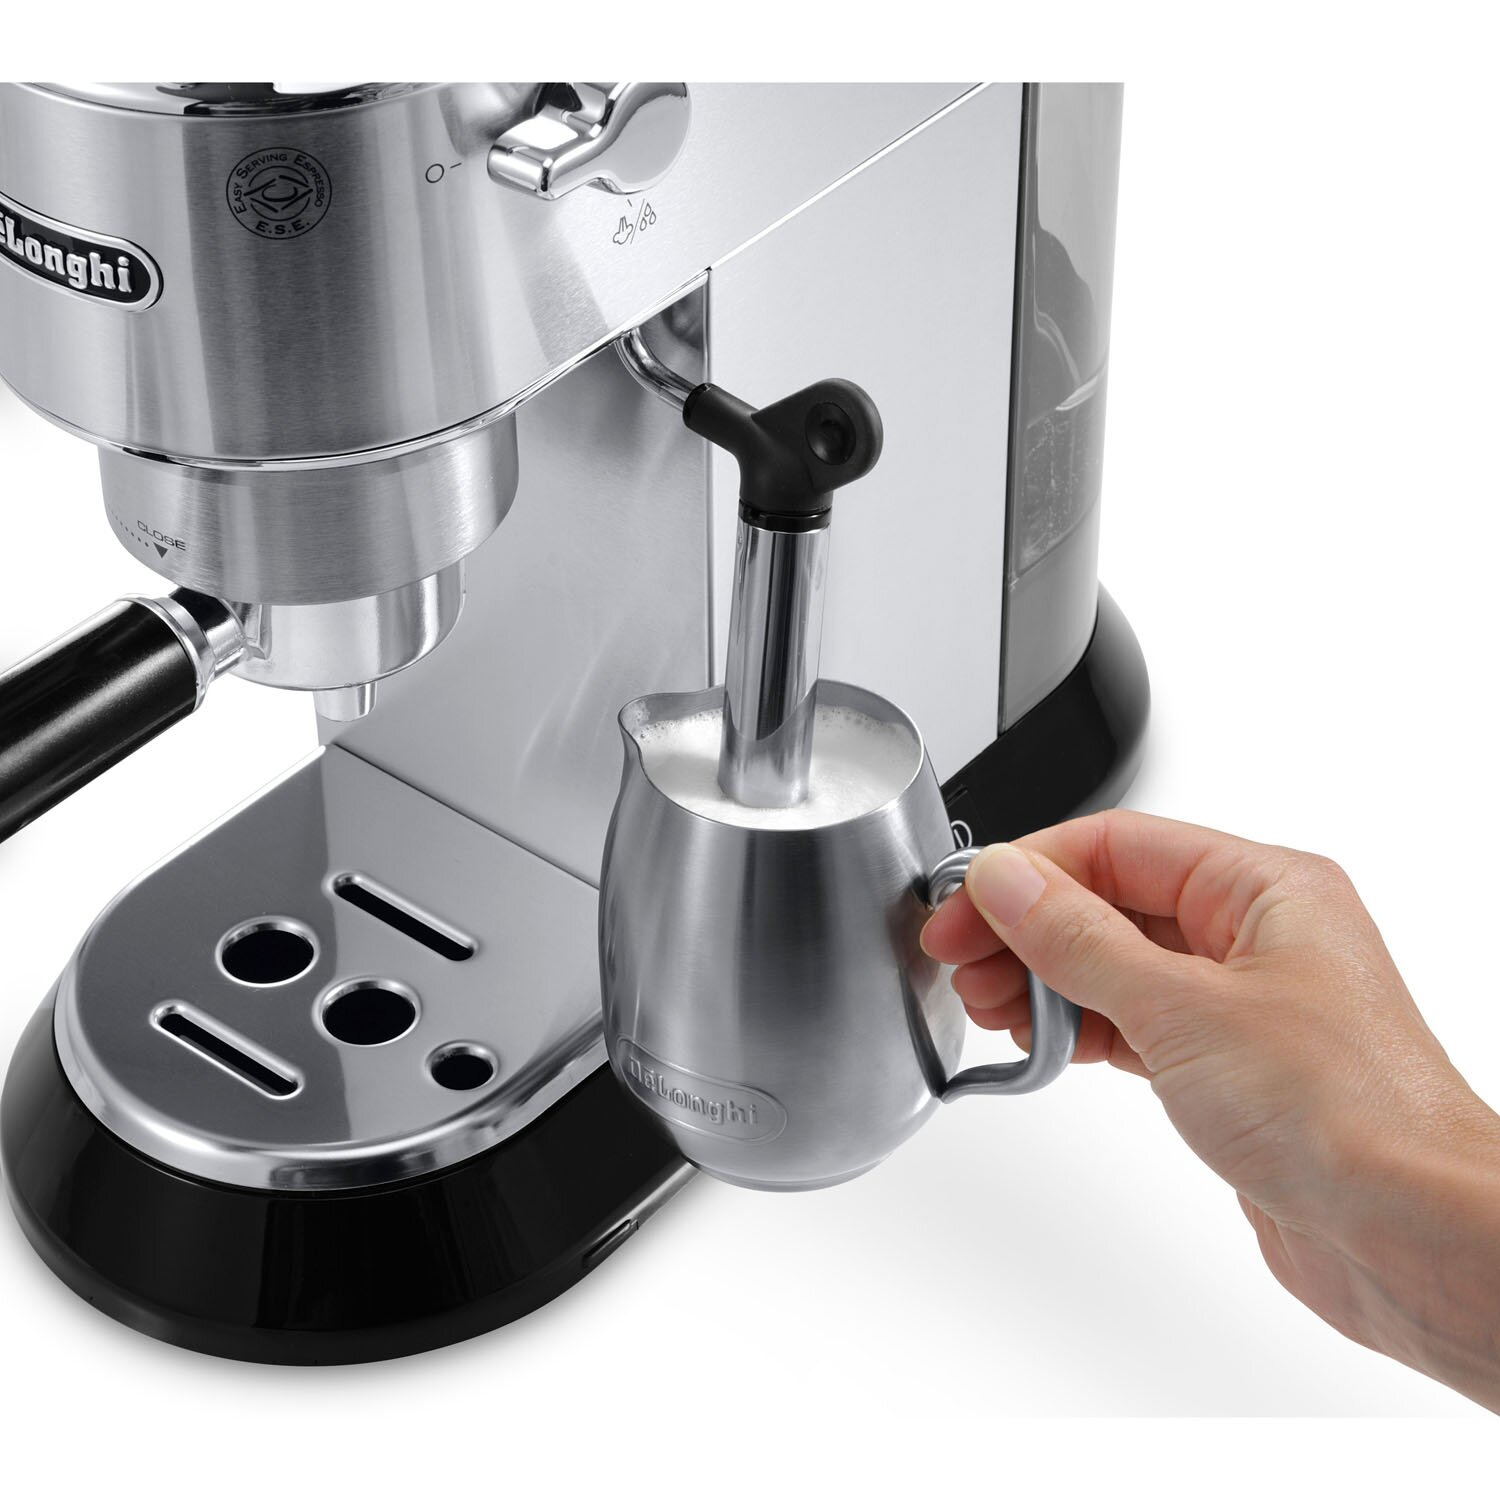 DeLonghi Dedica 15-Bar Pump Espresso Machine with ...